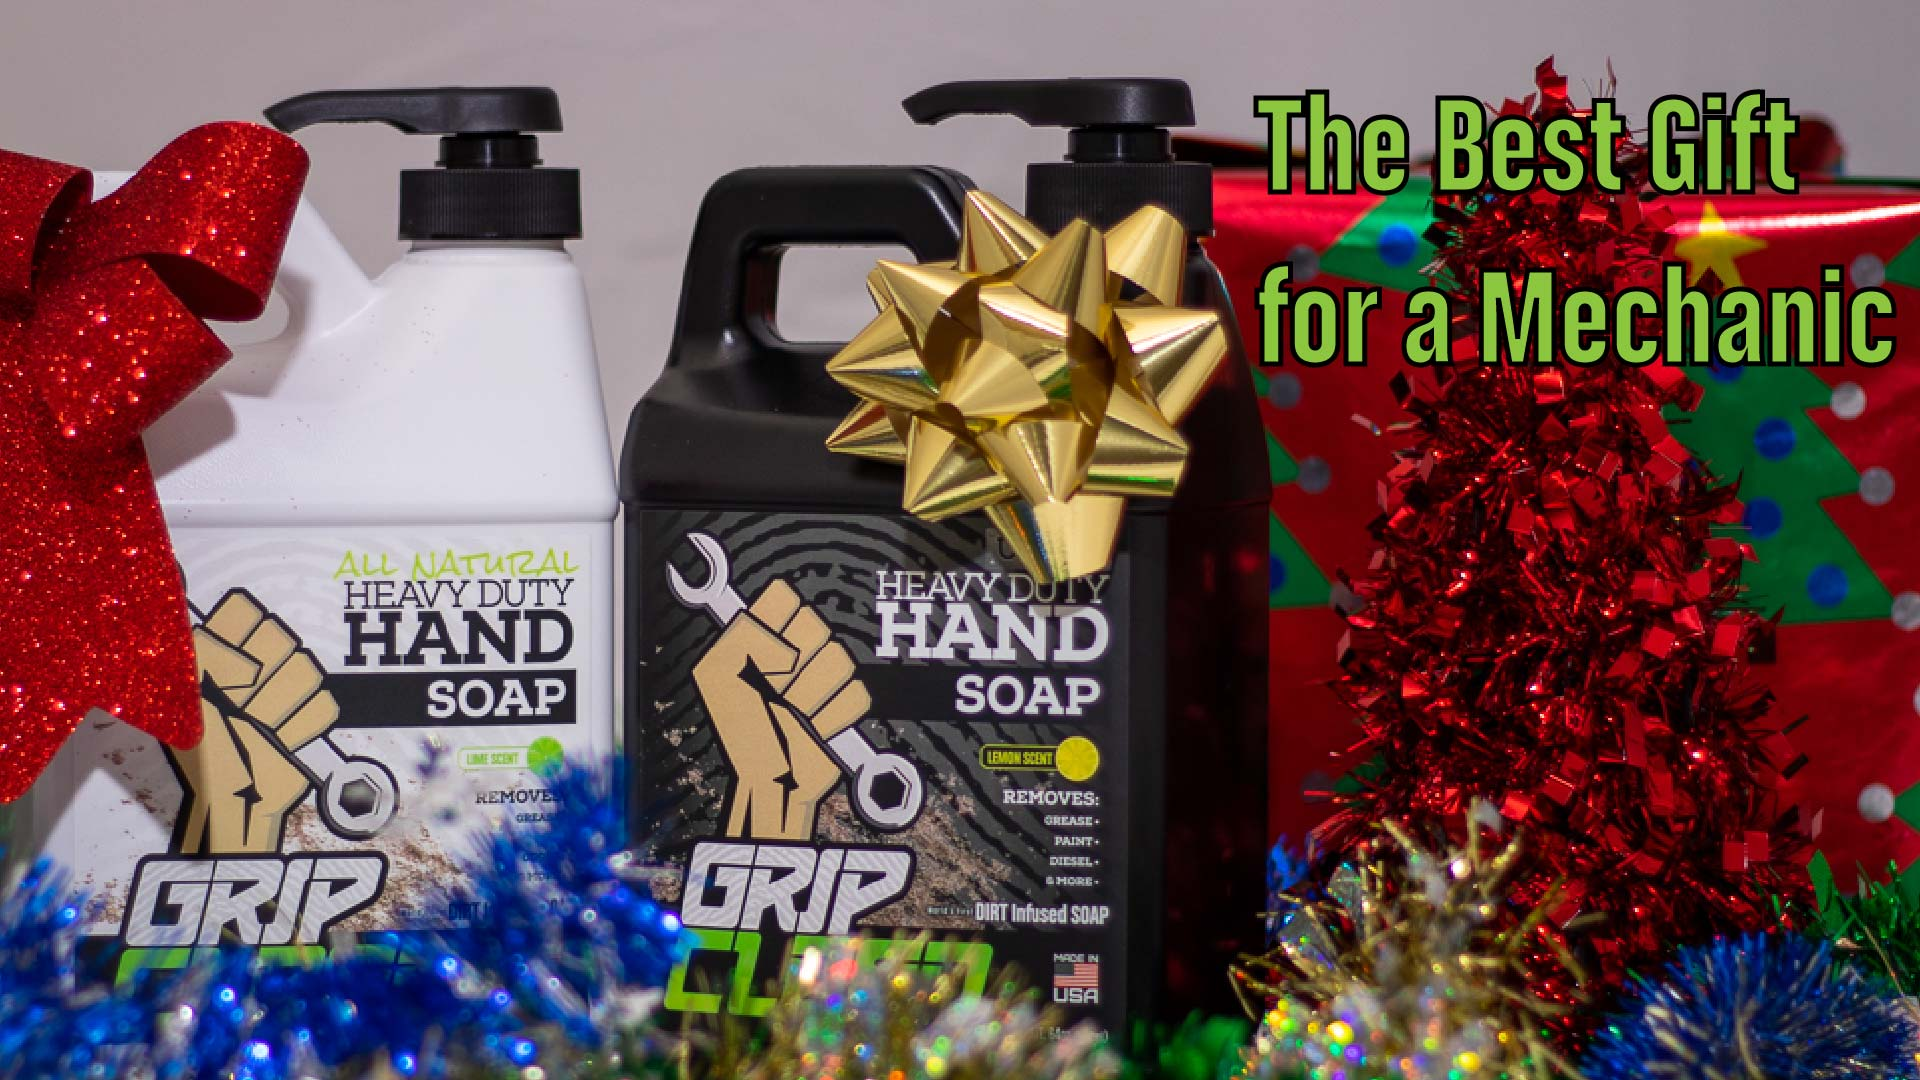 The Best Gift For a Mechanic - Natural Hand Cleaner | Grip Clean